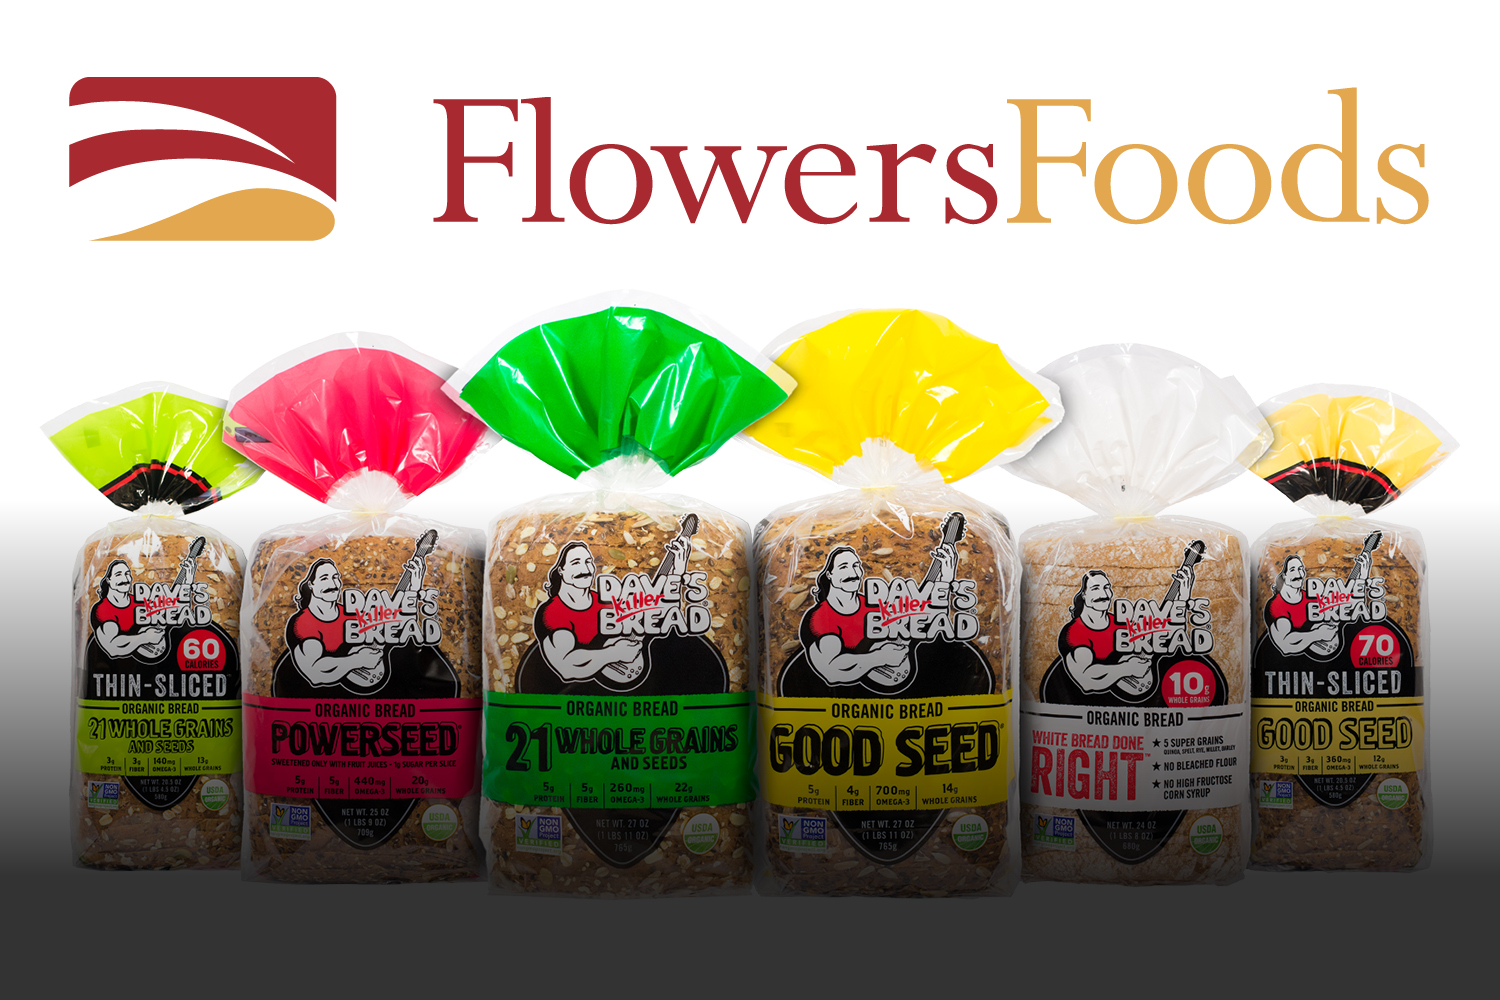 2015 - Dave's Killer Bread is Acquired by Flowers Foods